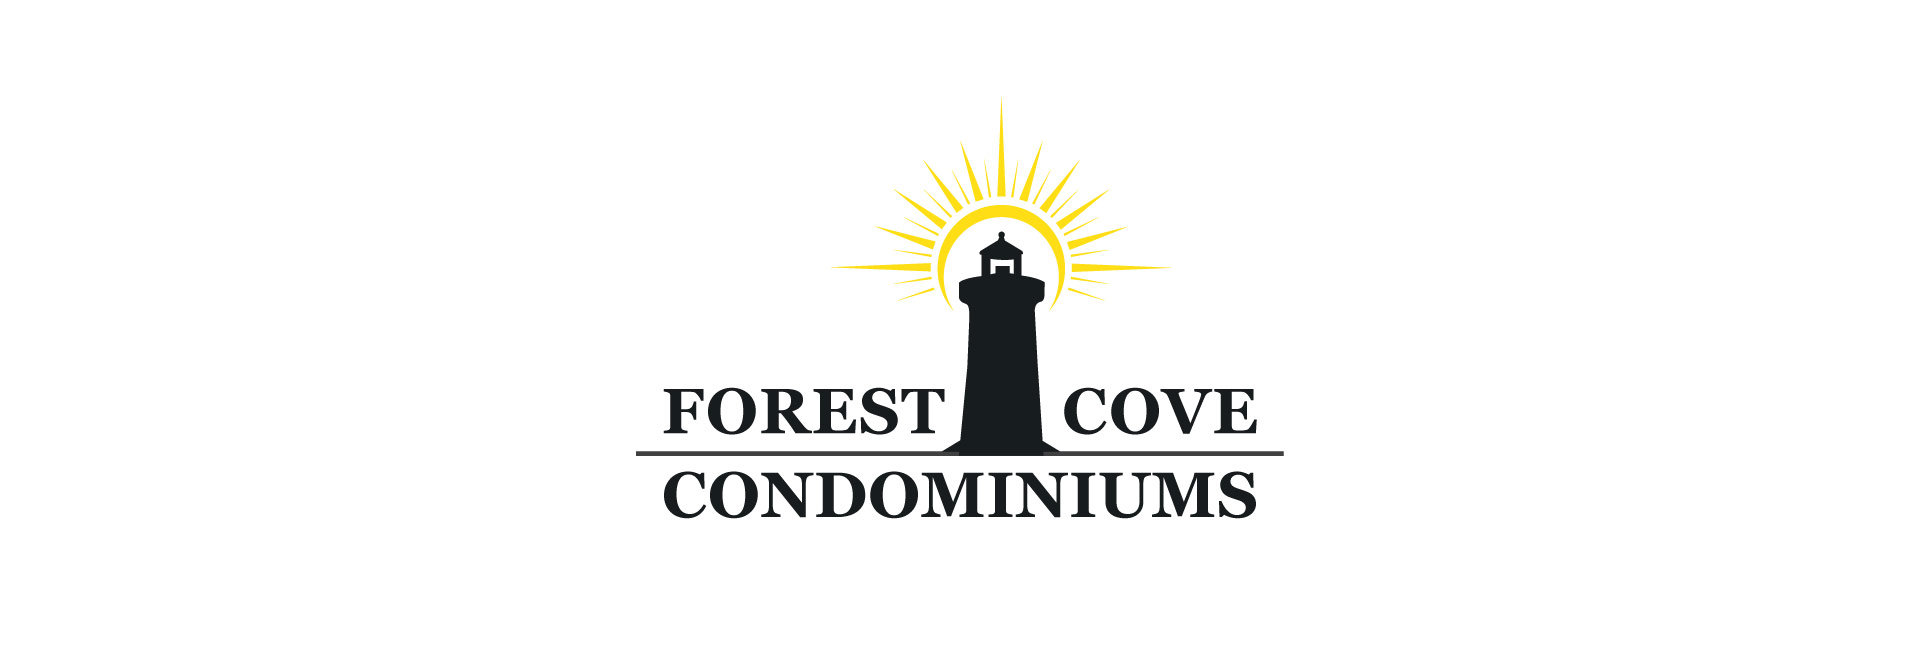 forest cove logo